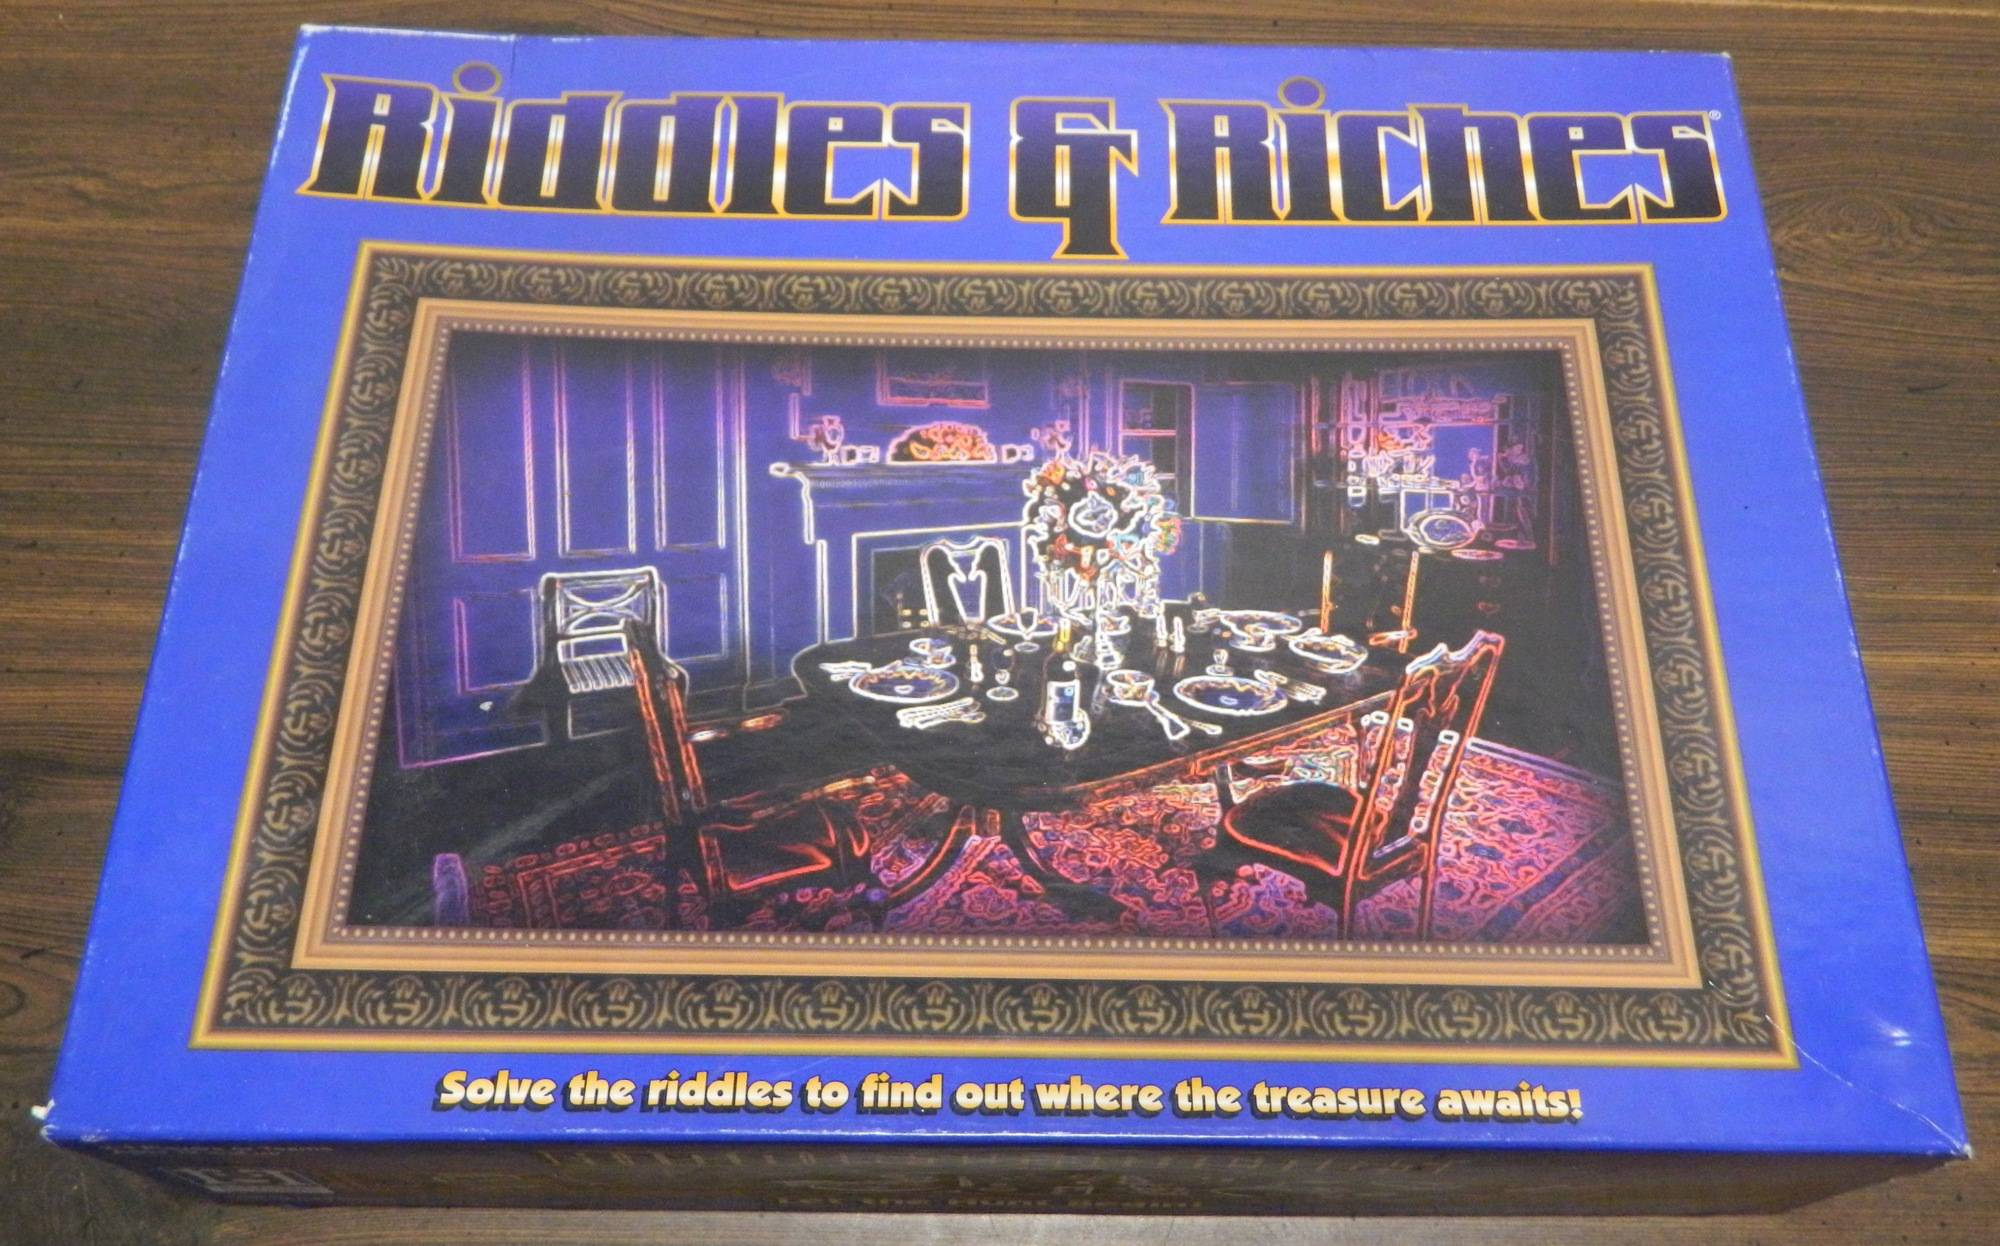 Box for Riddles & Riches